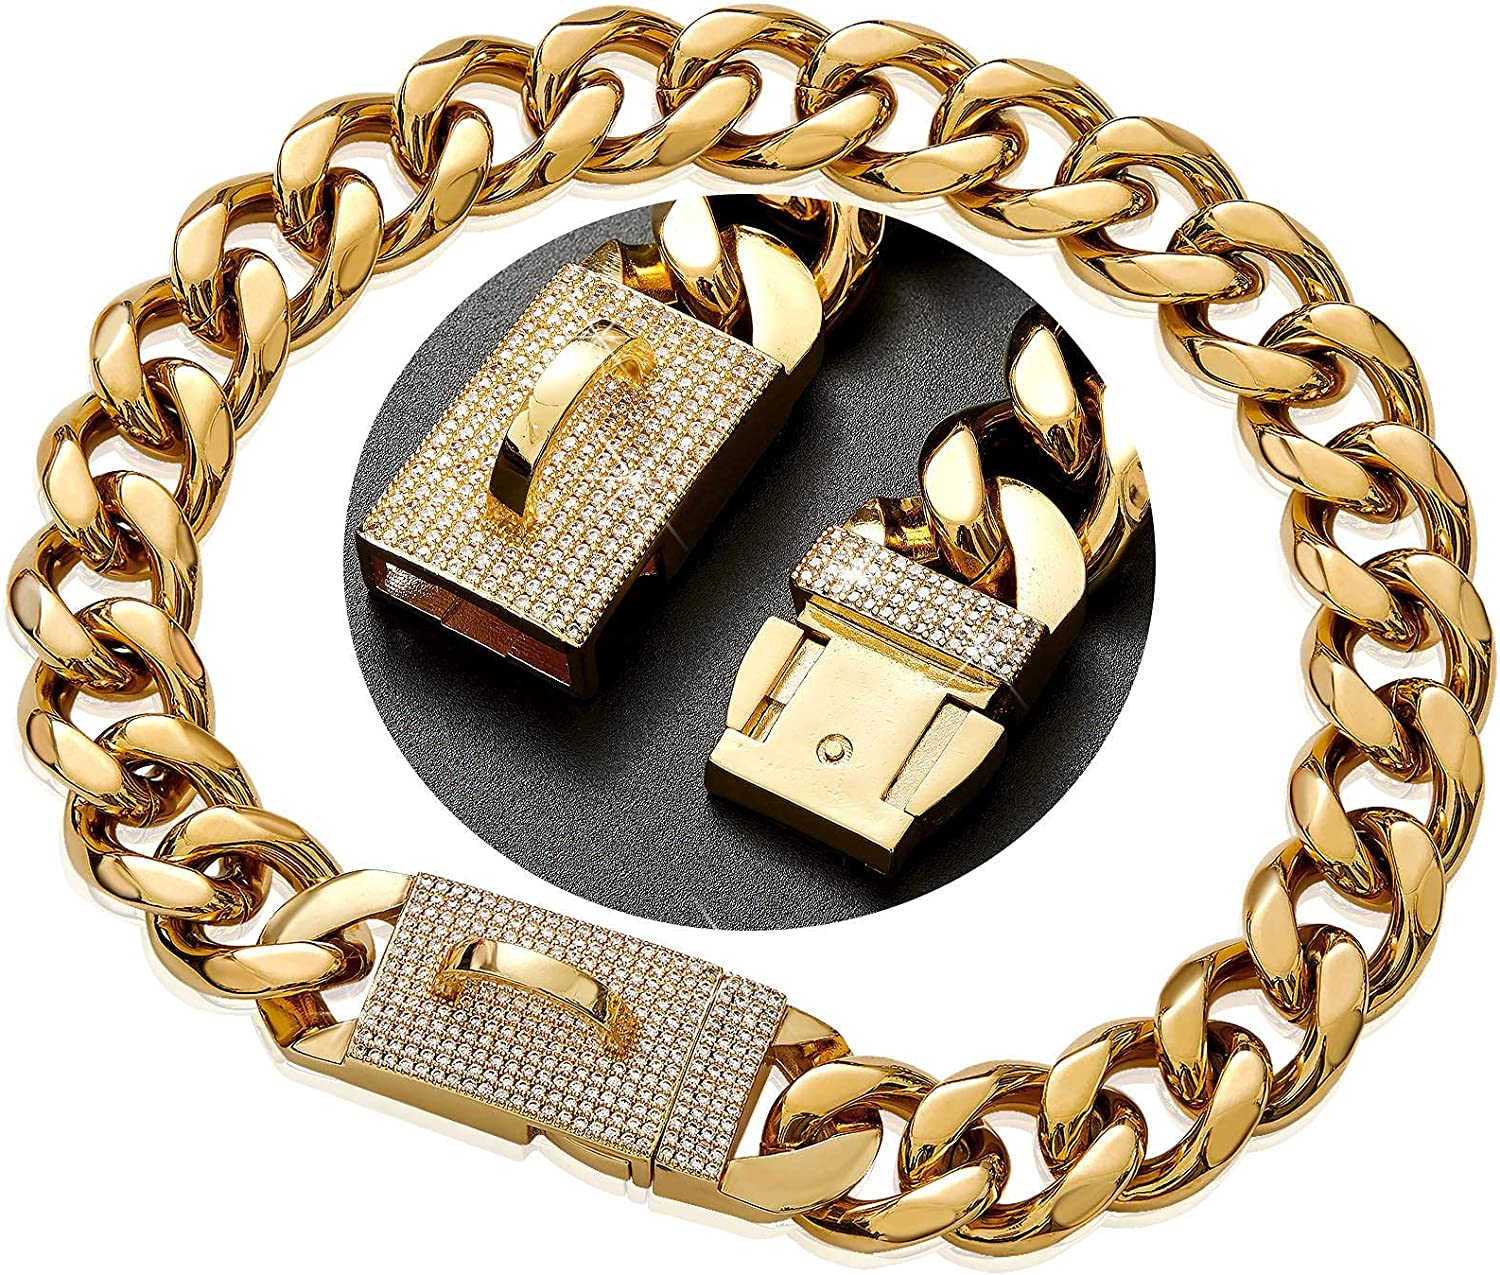 18K Dallas Mall Gold Dog Collar Chain Necklace Strong Be super welcome Diamond Buckle with S